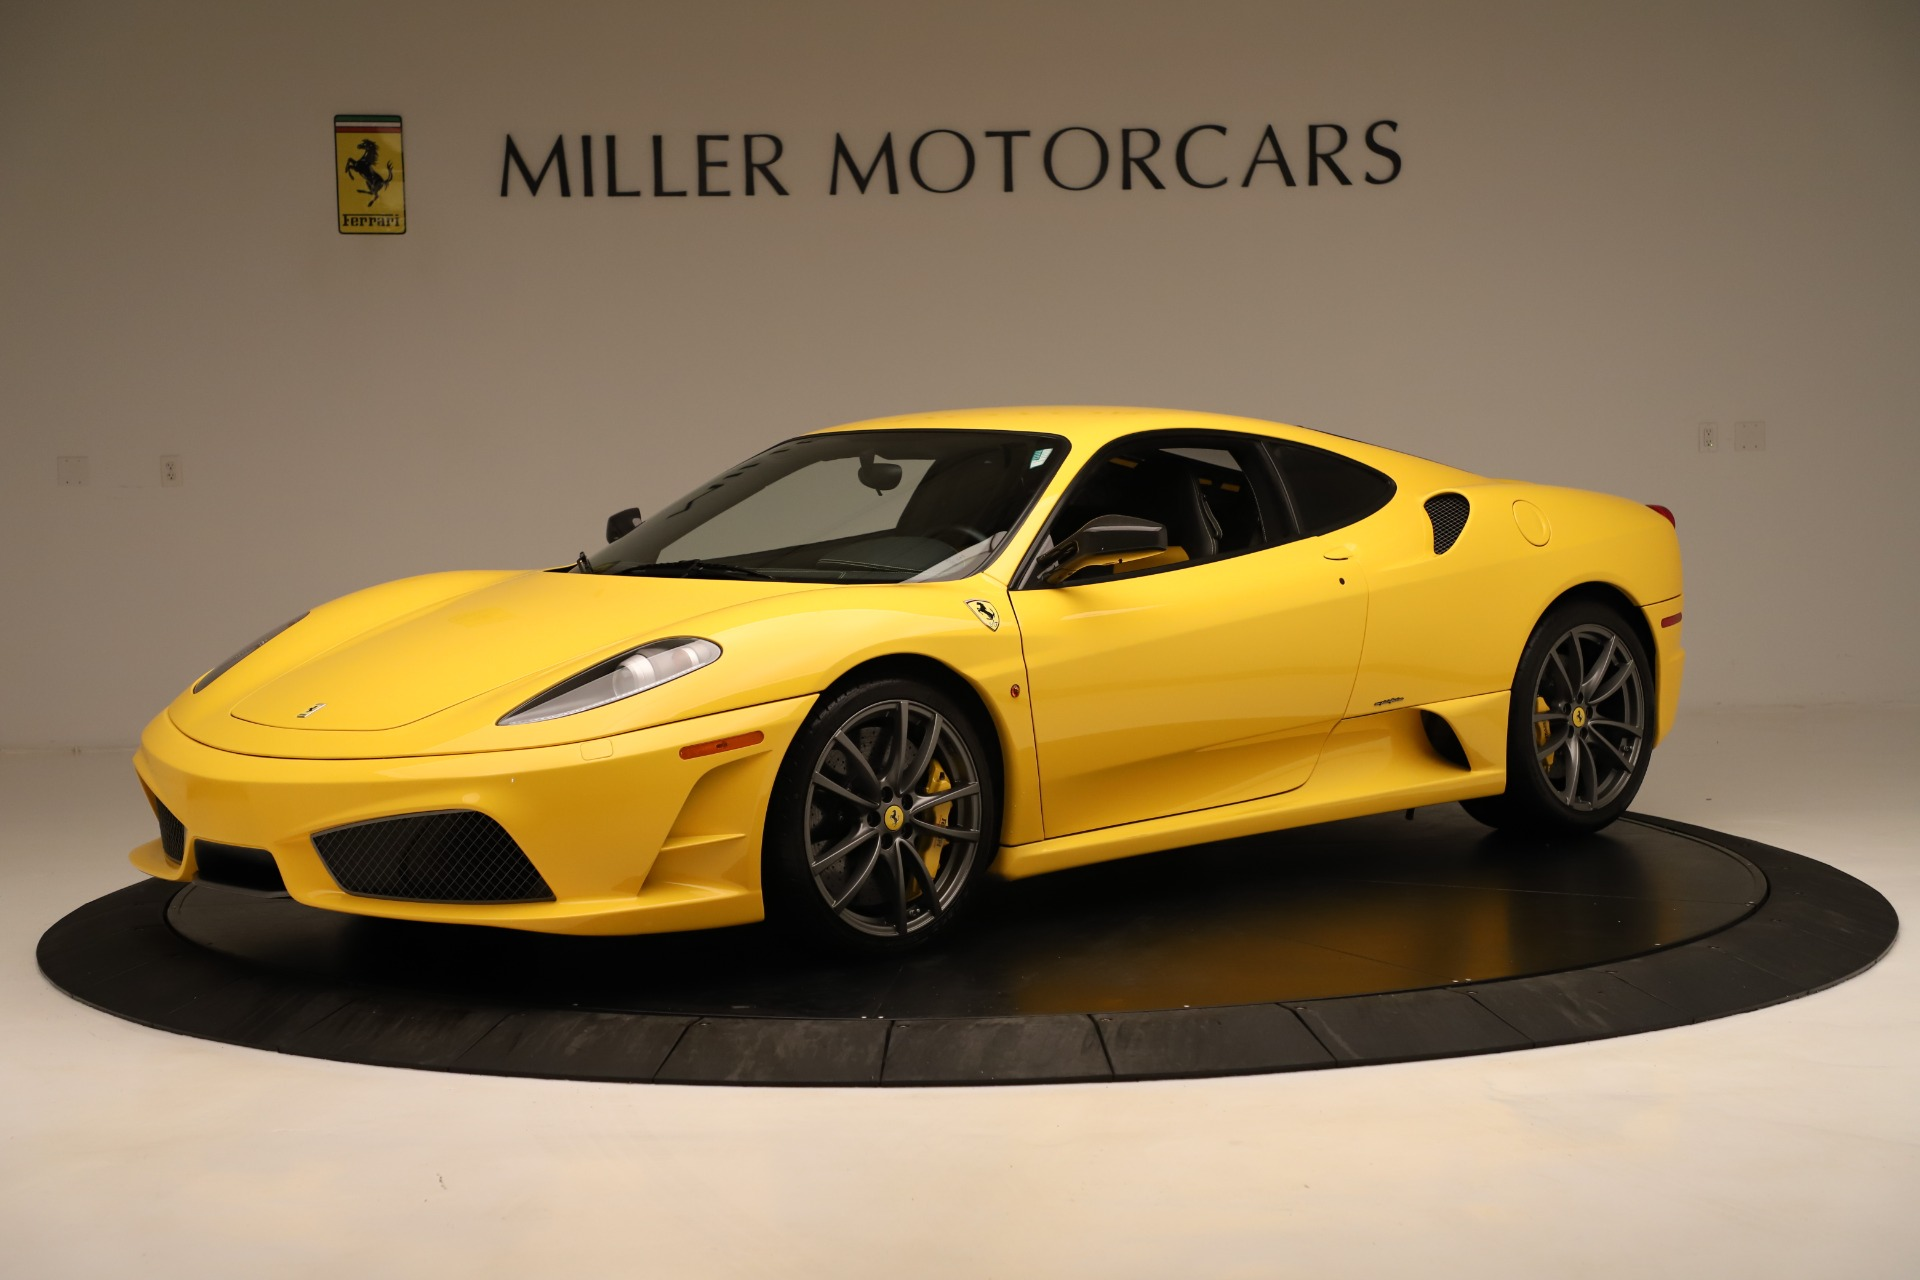 Used 2008 Ferrari F430 Scuderia For Sale In Greenwich, CT 3319_p2